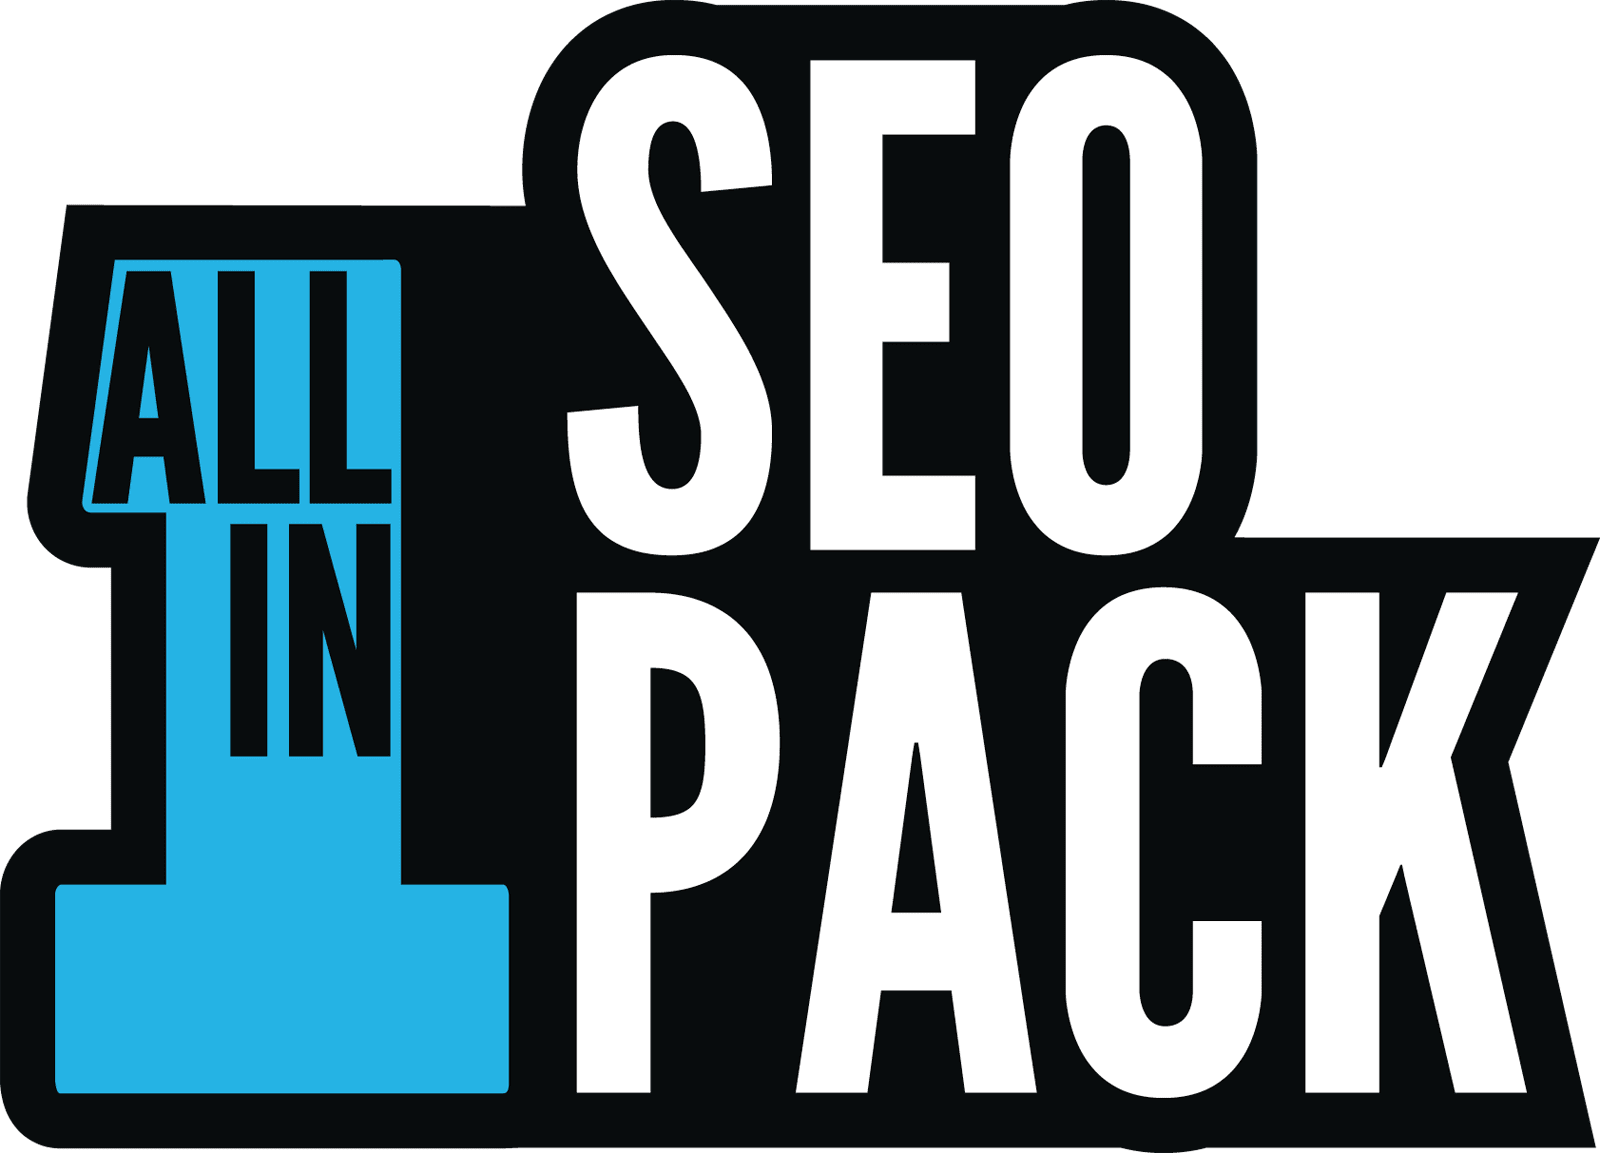 I will latest update boost your google ranking with high quality SEO package service